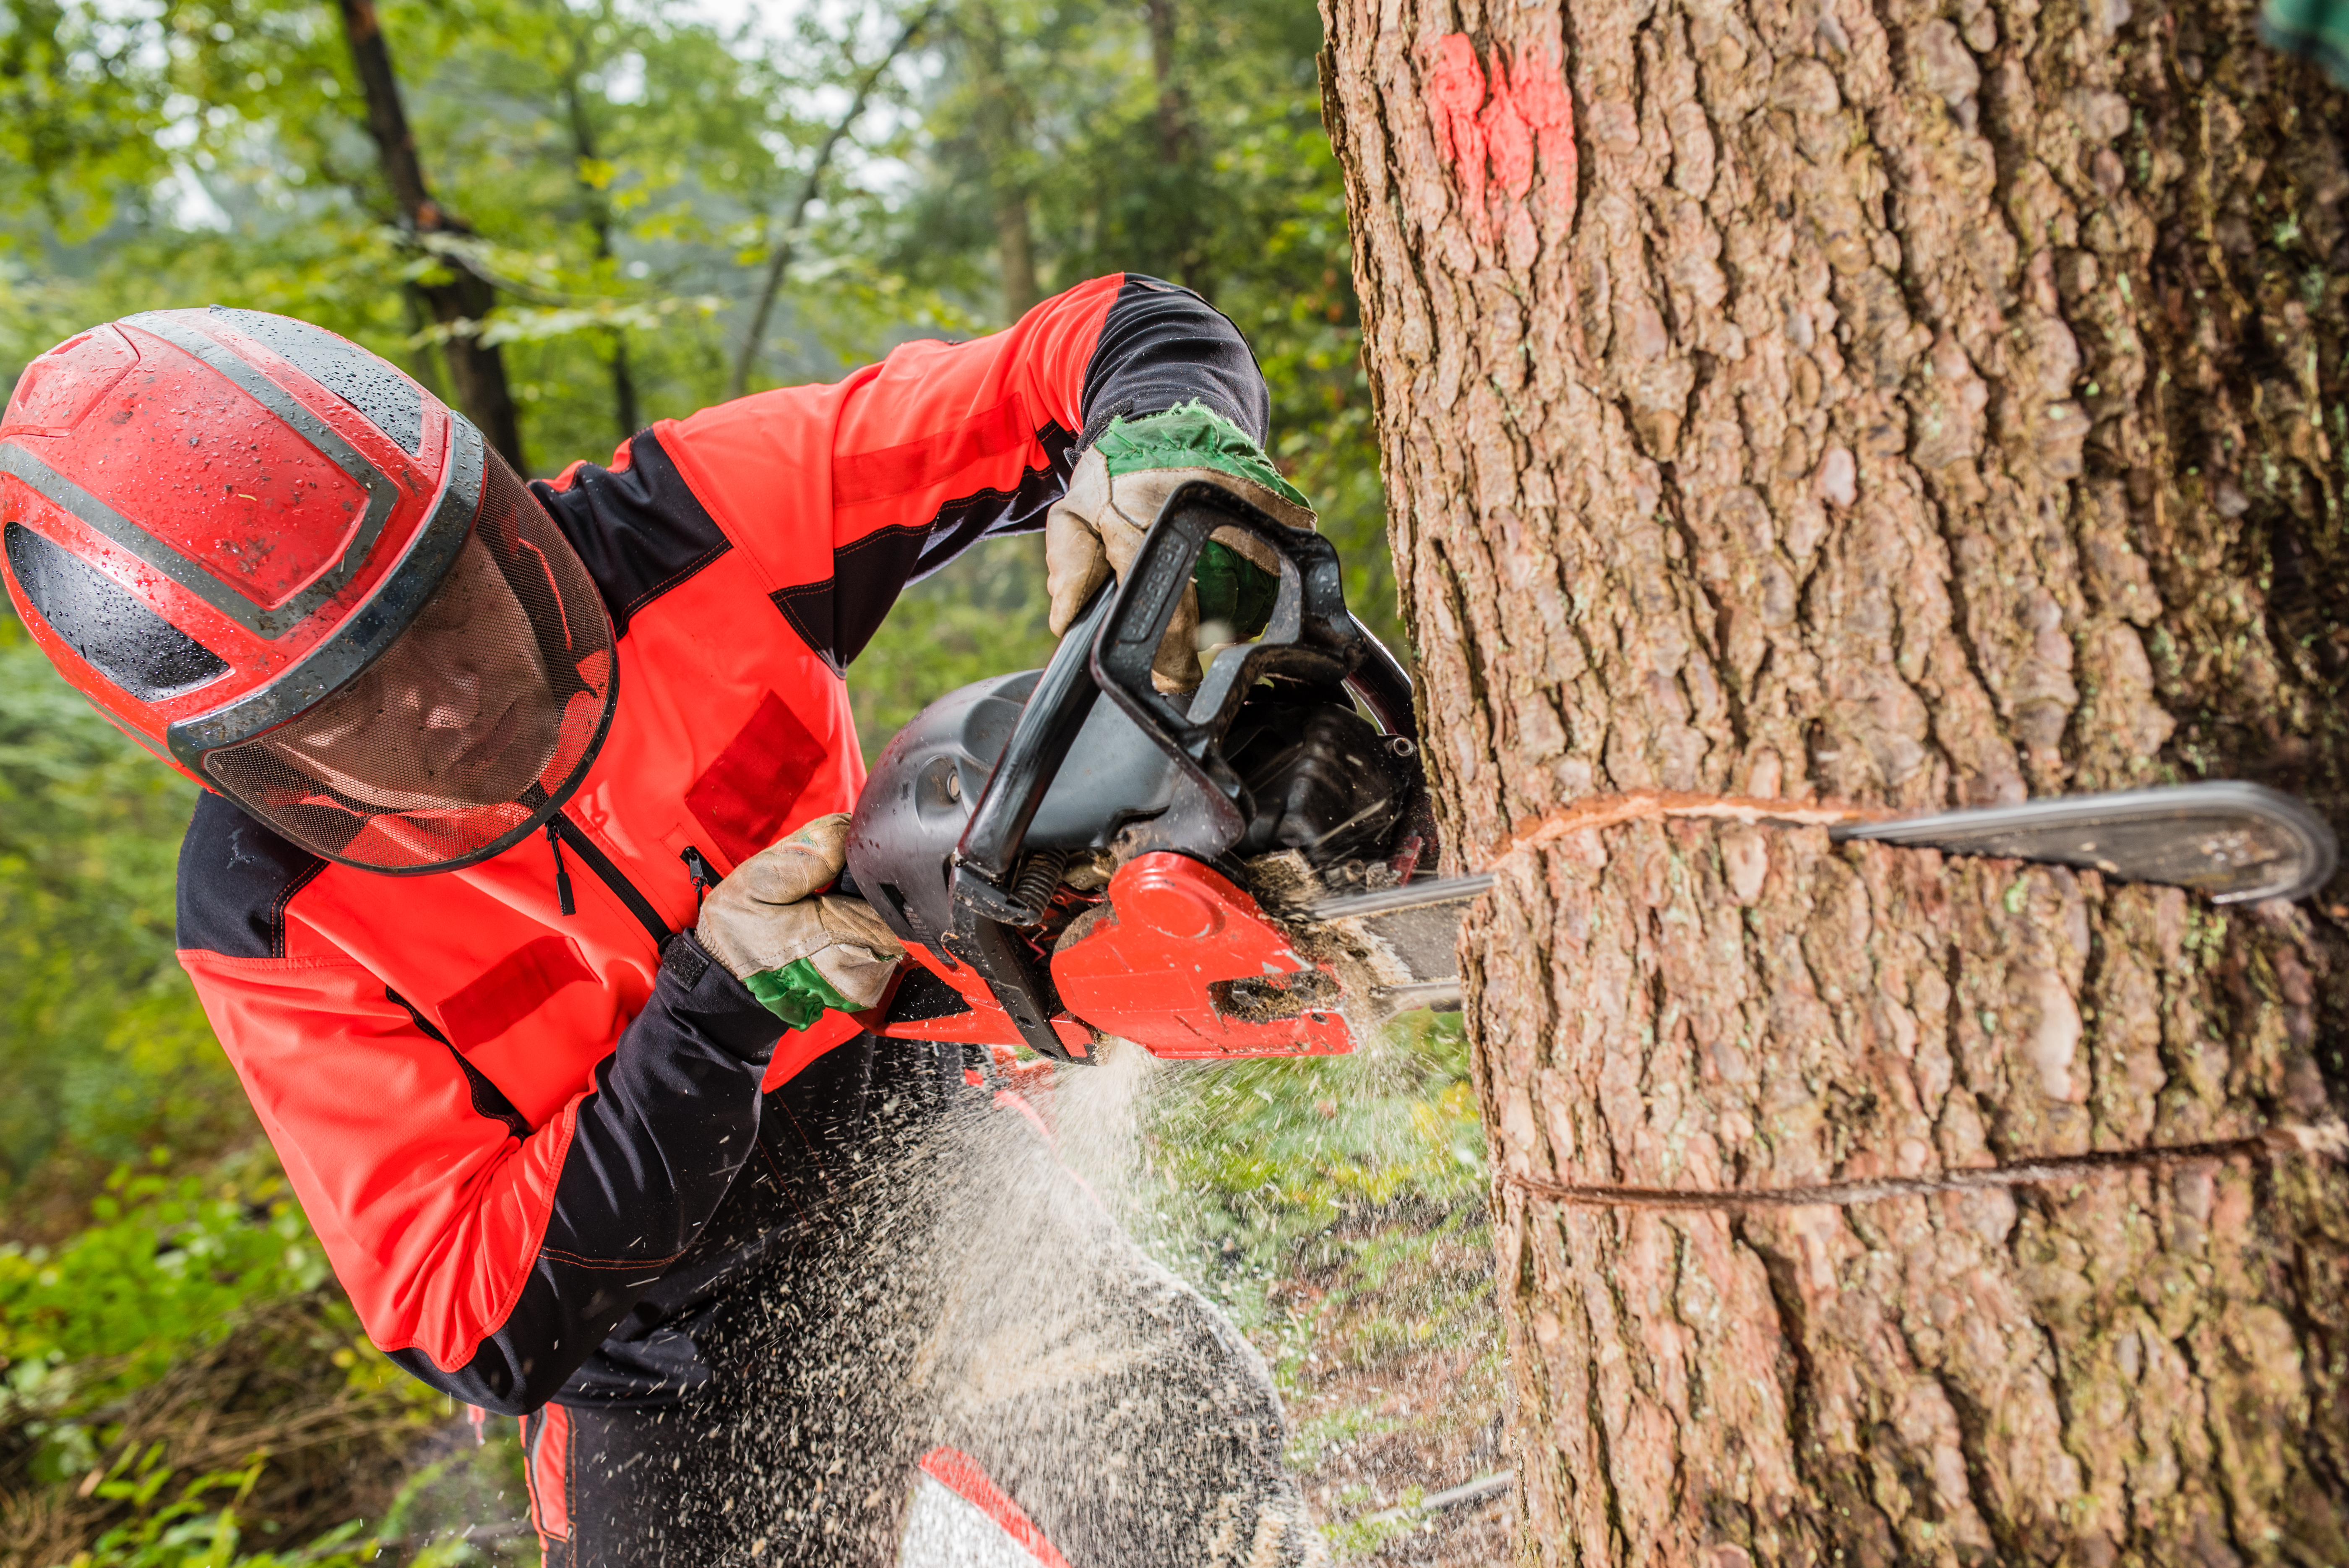 What Is the Gas to Oil Mixture Ratio for Chain Saws? | Home Guides